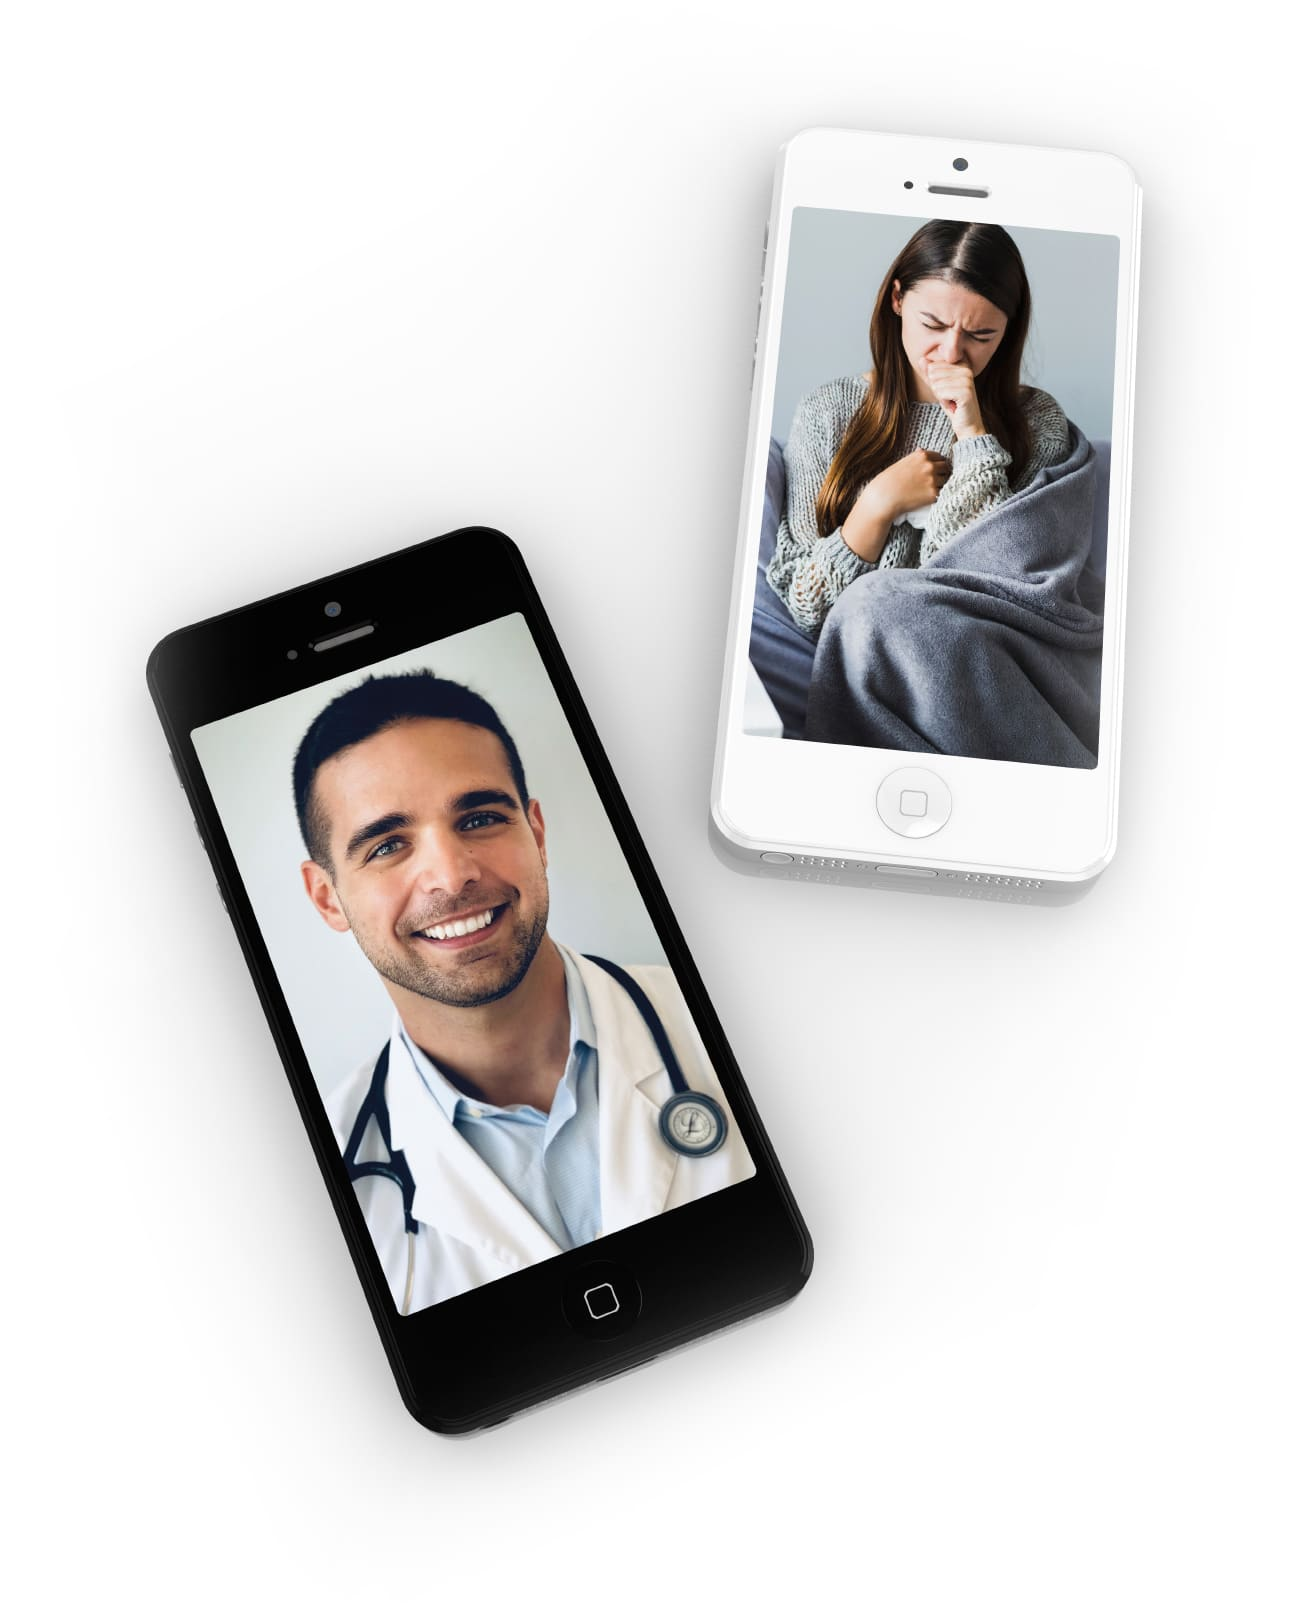 Dr. Efe Sahinoglu, M.D. consulting with a patient via telemedicine